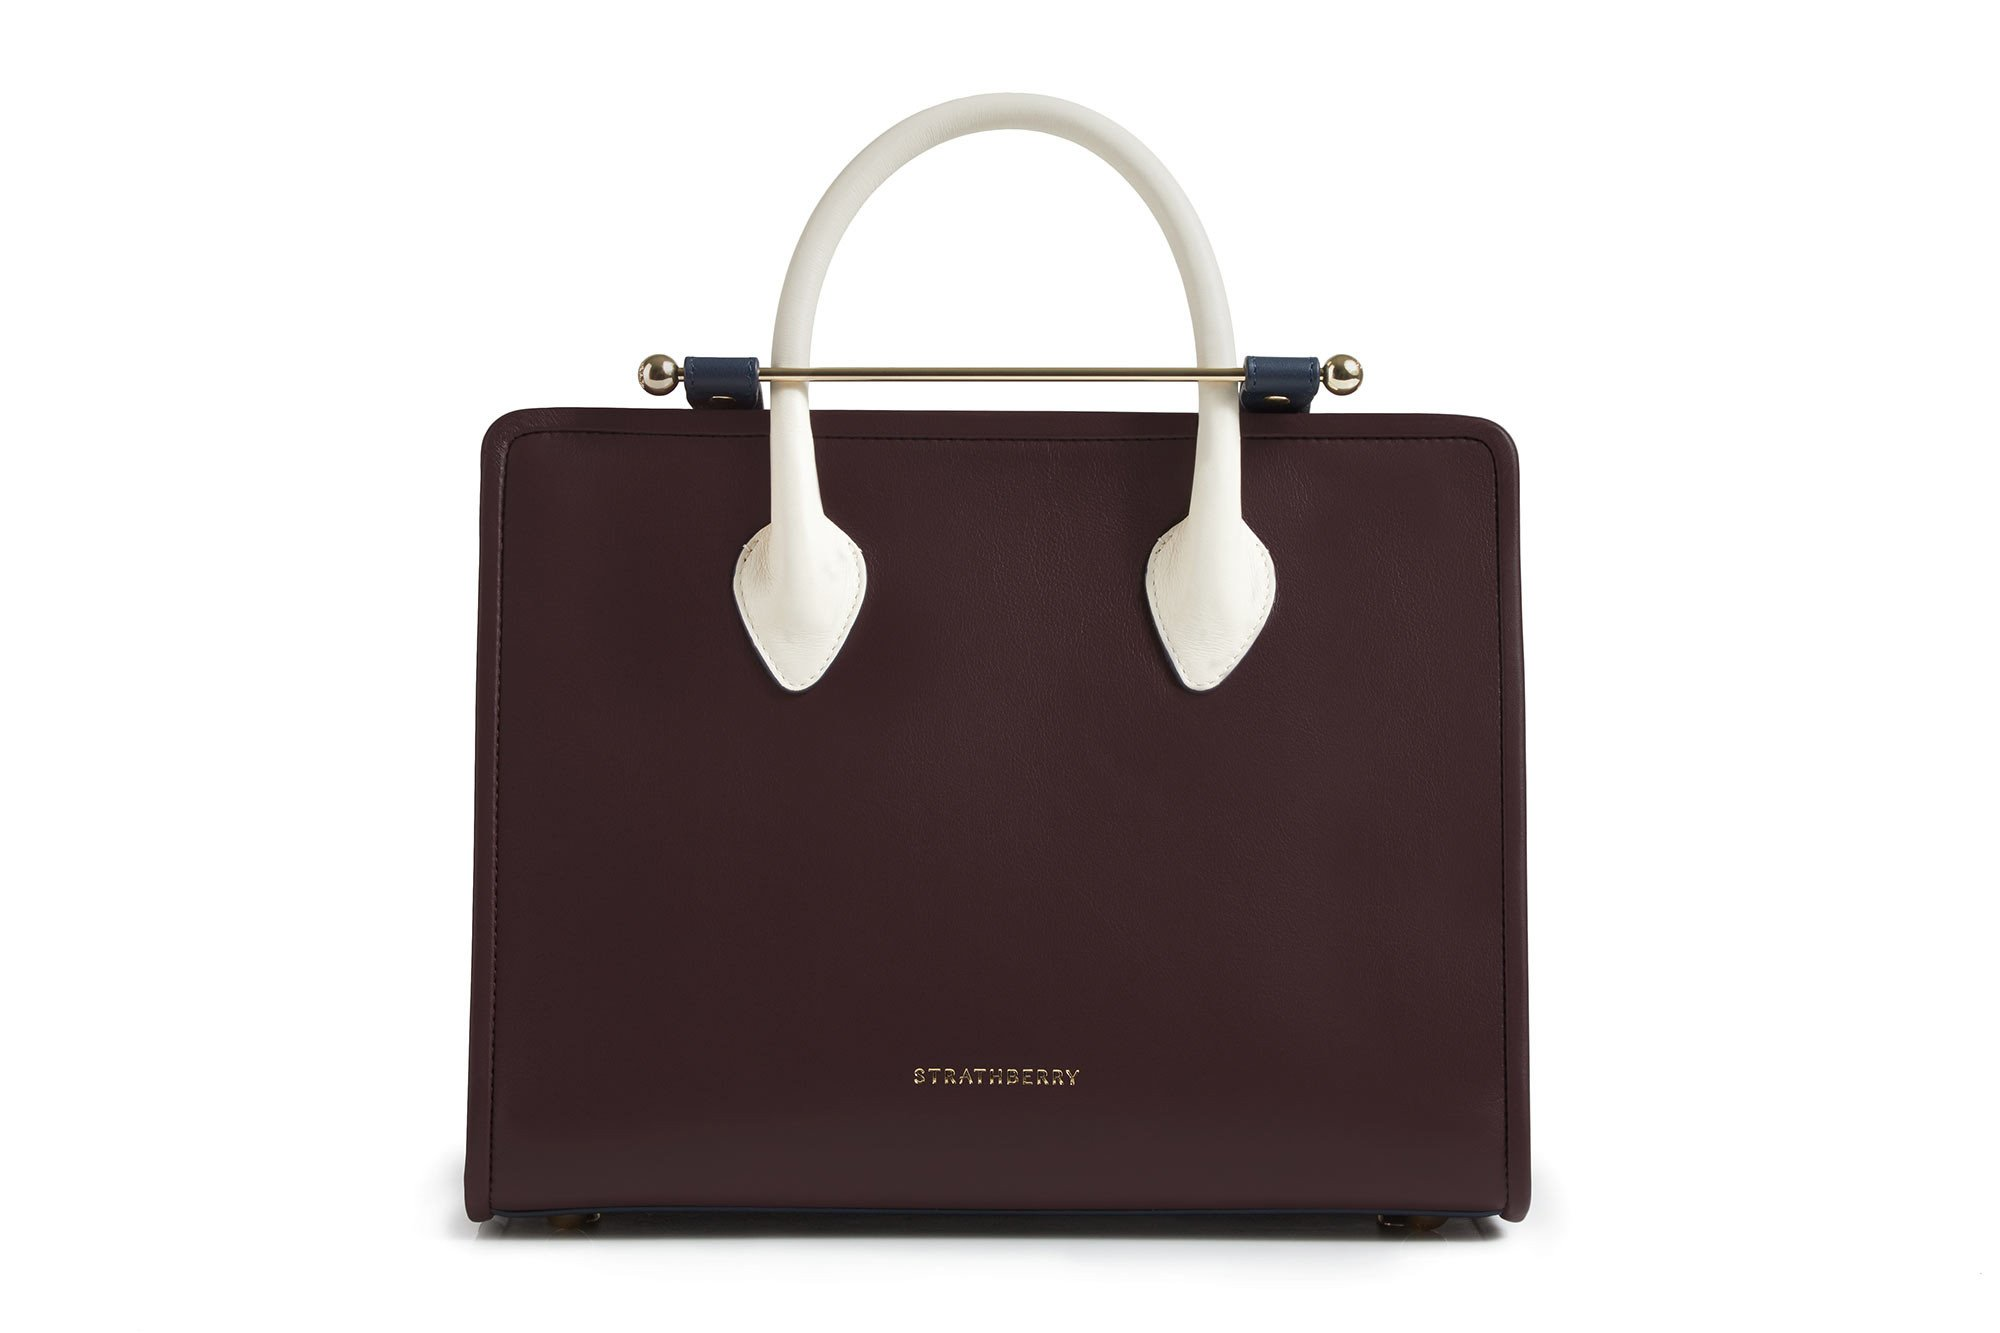 Meghan Markle's Strathberry Midi tote in burgundy